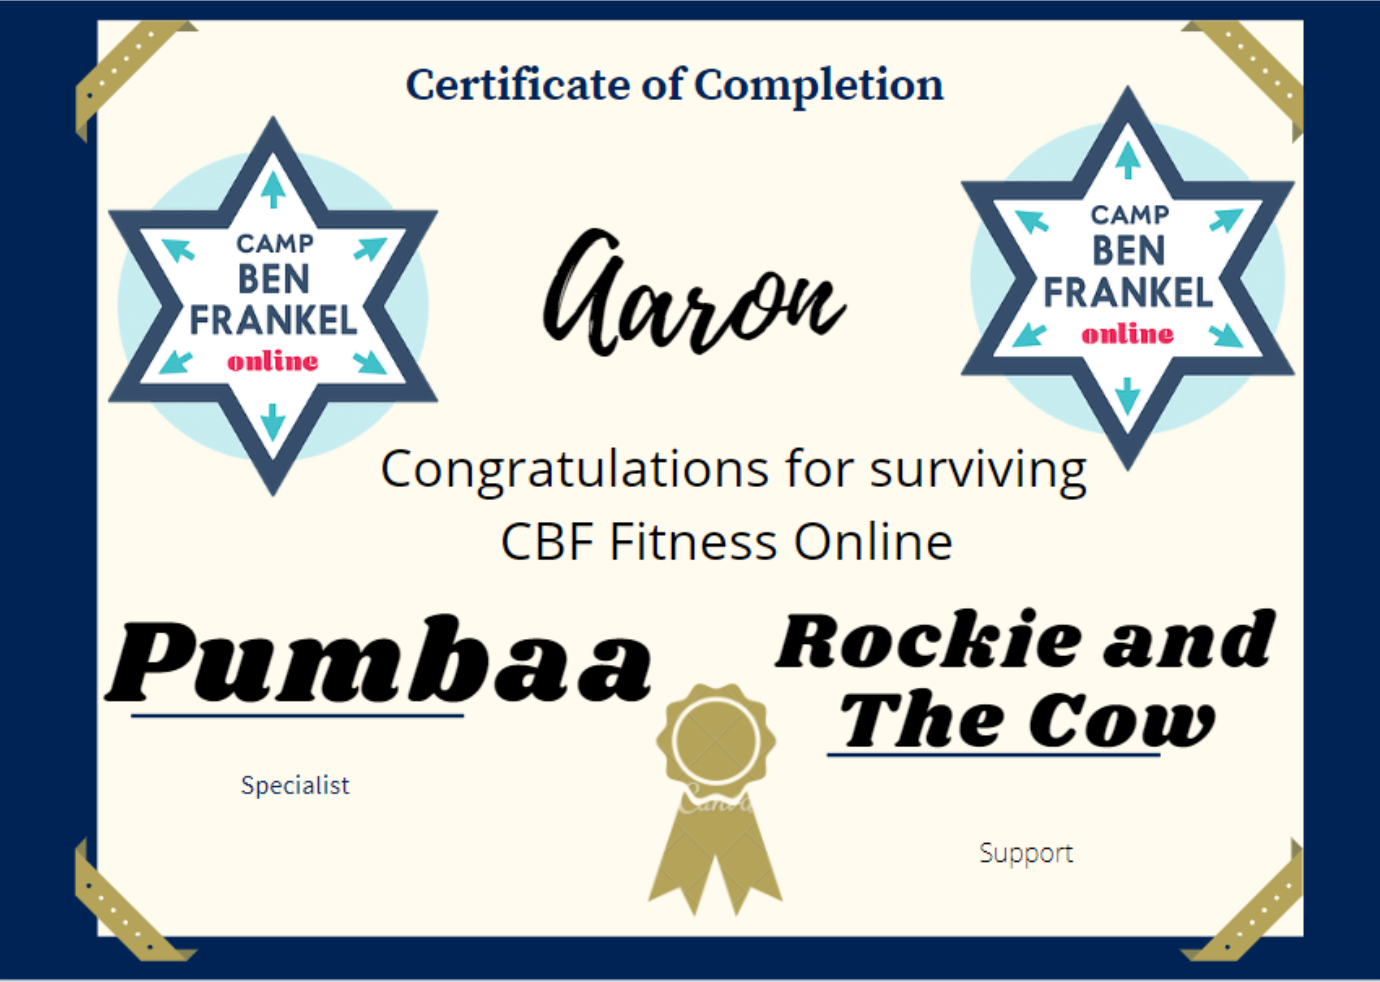 Aaron - Certificate of Completion